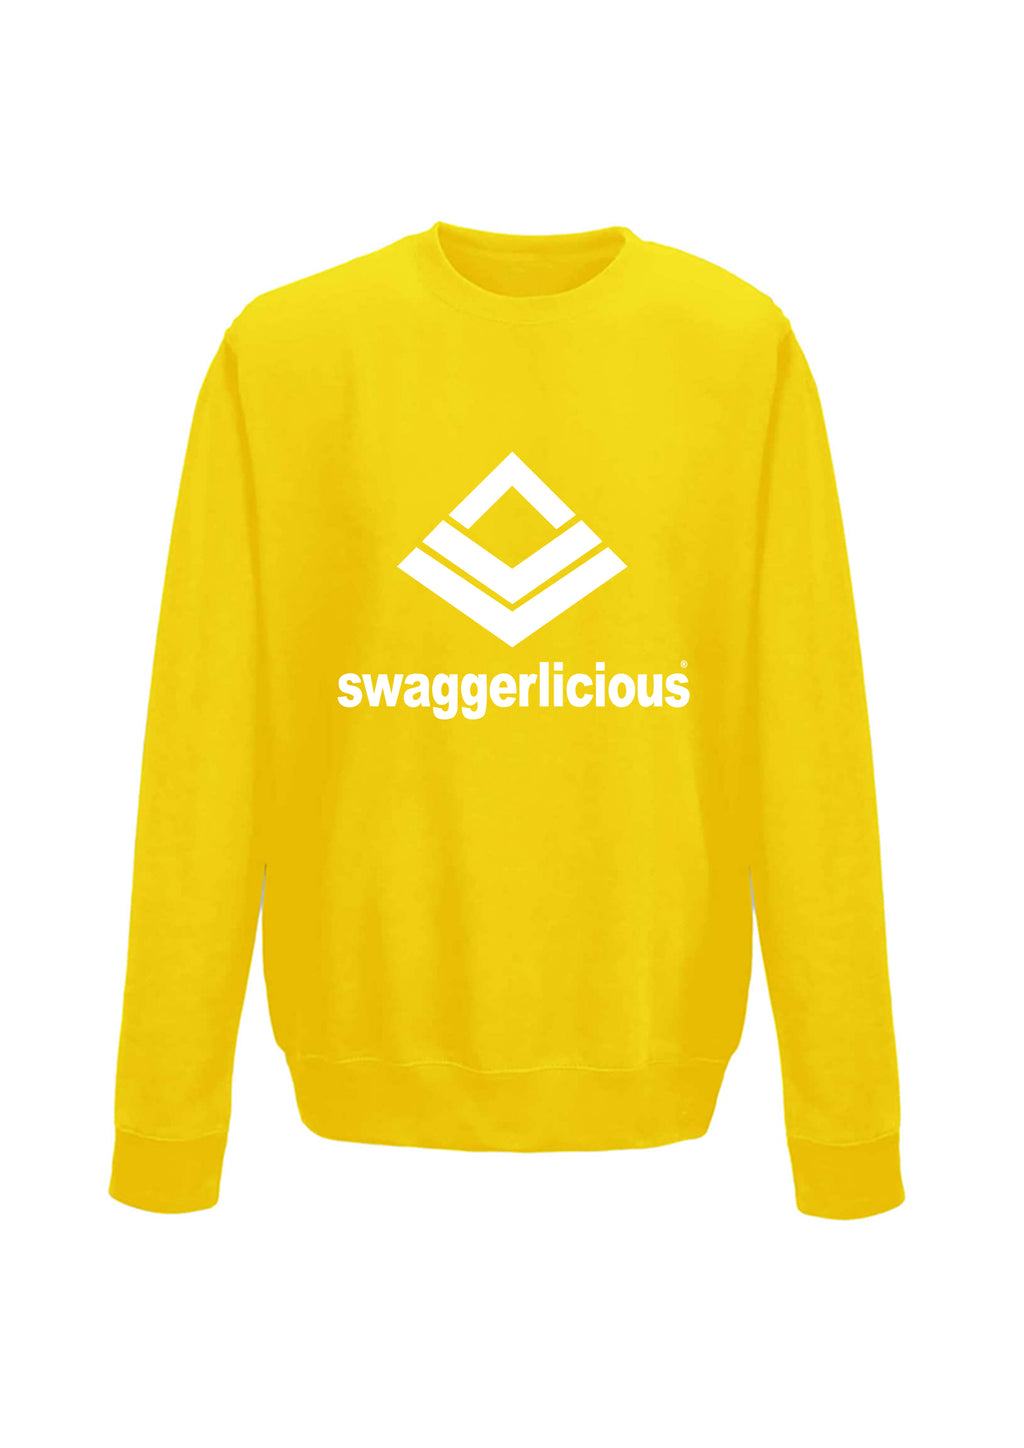 Swaggerlicious Classic Sports Yellow Sweatshirt - swaggerlicious-clothing.com